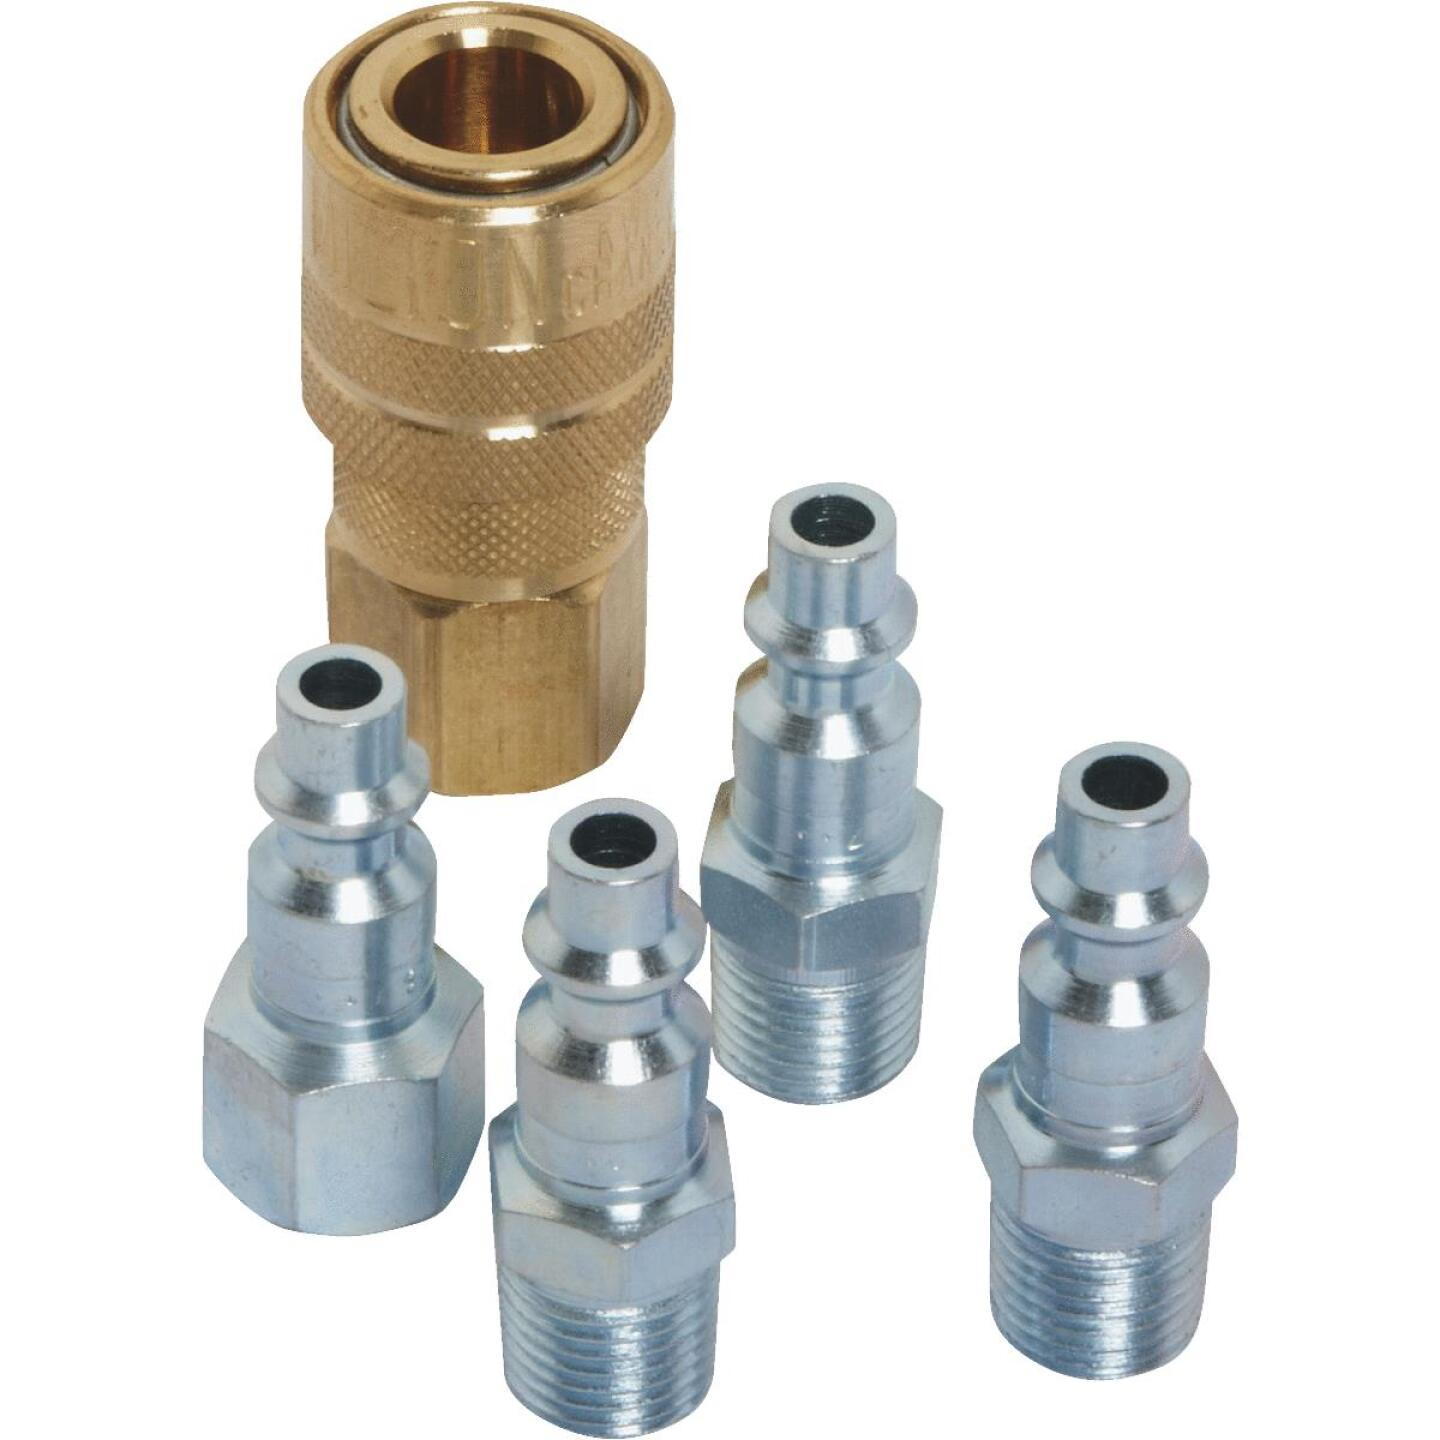 Milton 1/4 In. M-Style Coupler and Plug Kit, (5-Piece) Image 3